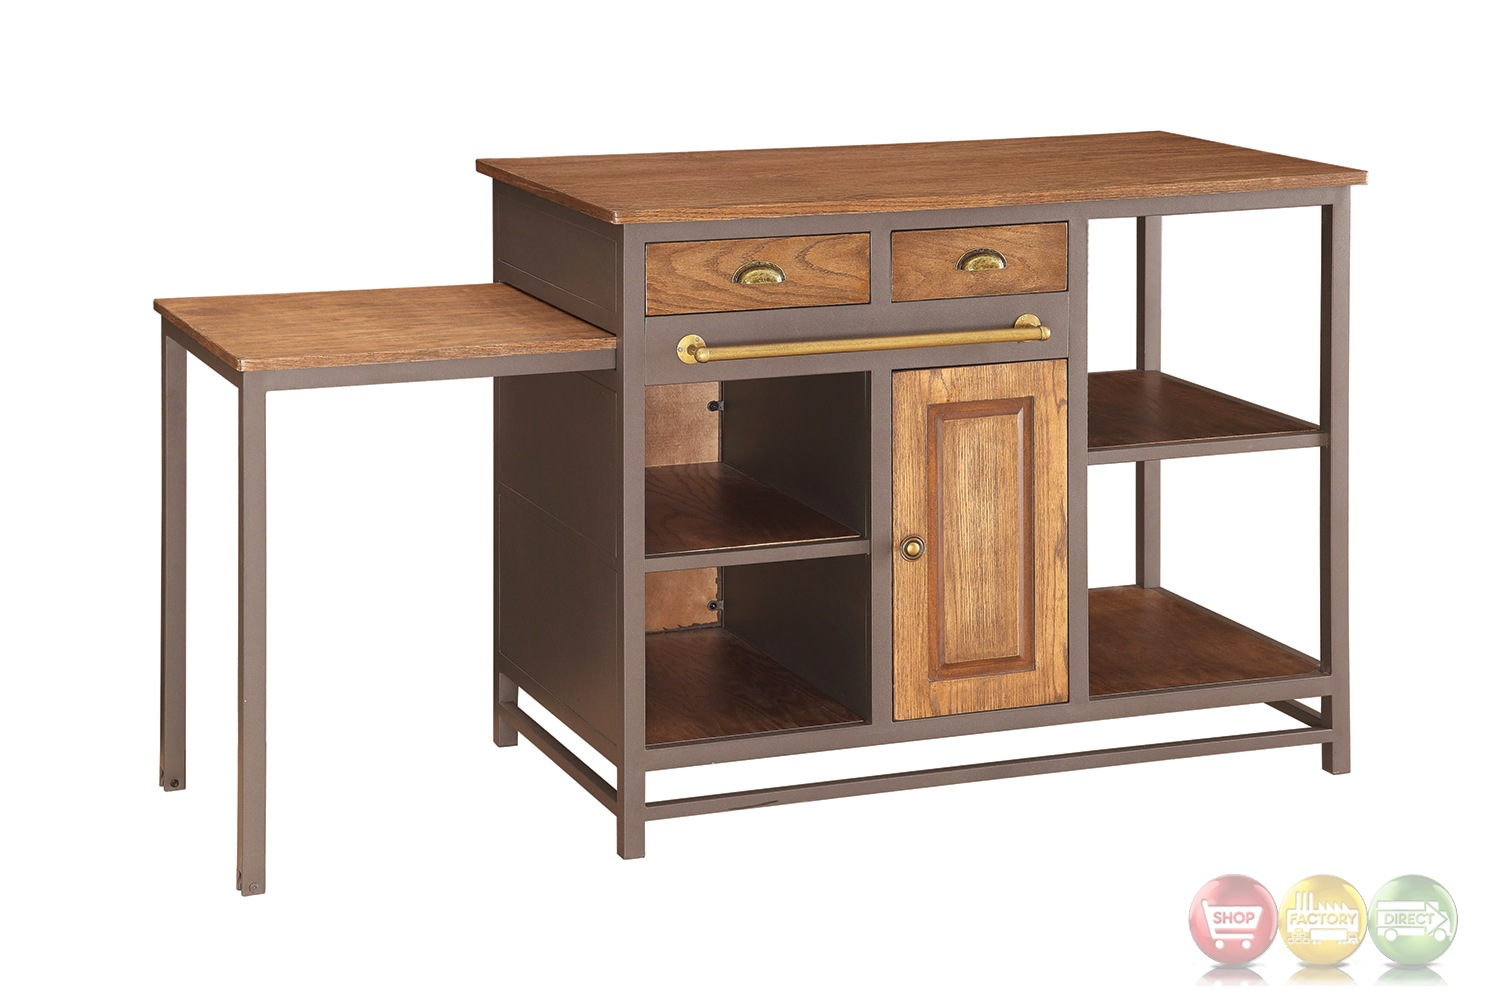 metal and wood 2 drawer kitchen island with pull out table